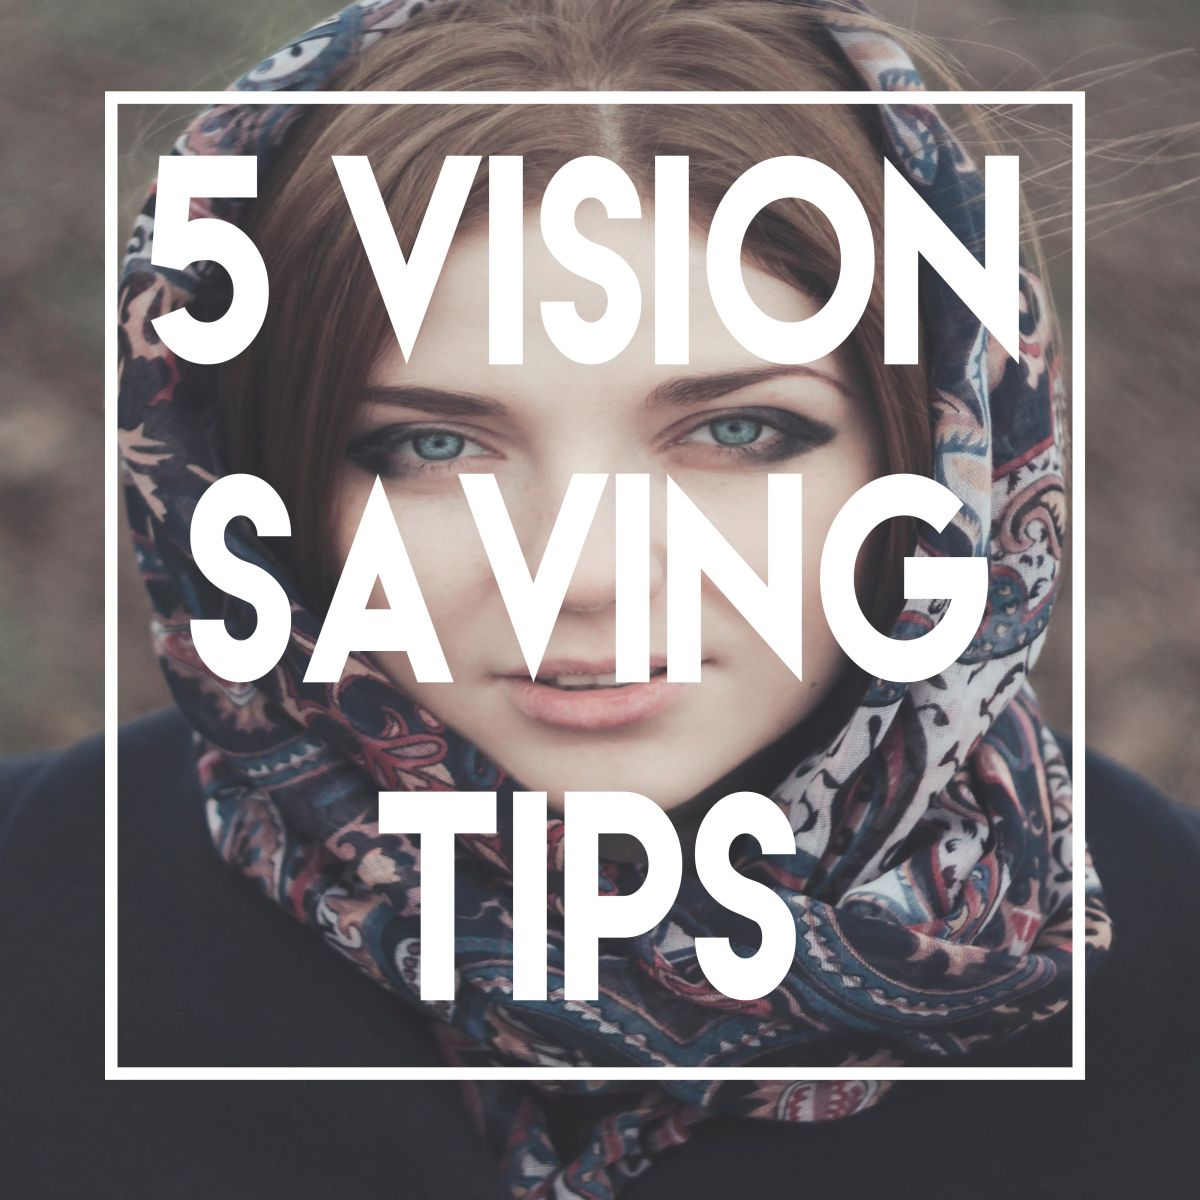 Vision saving tips image